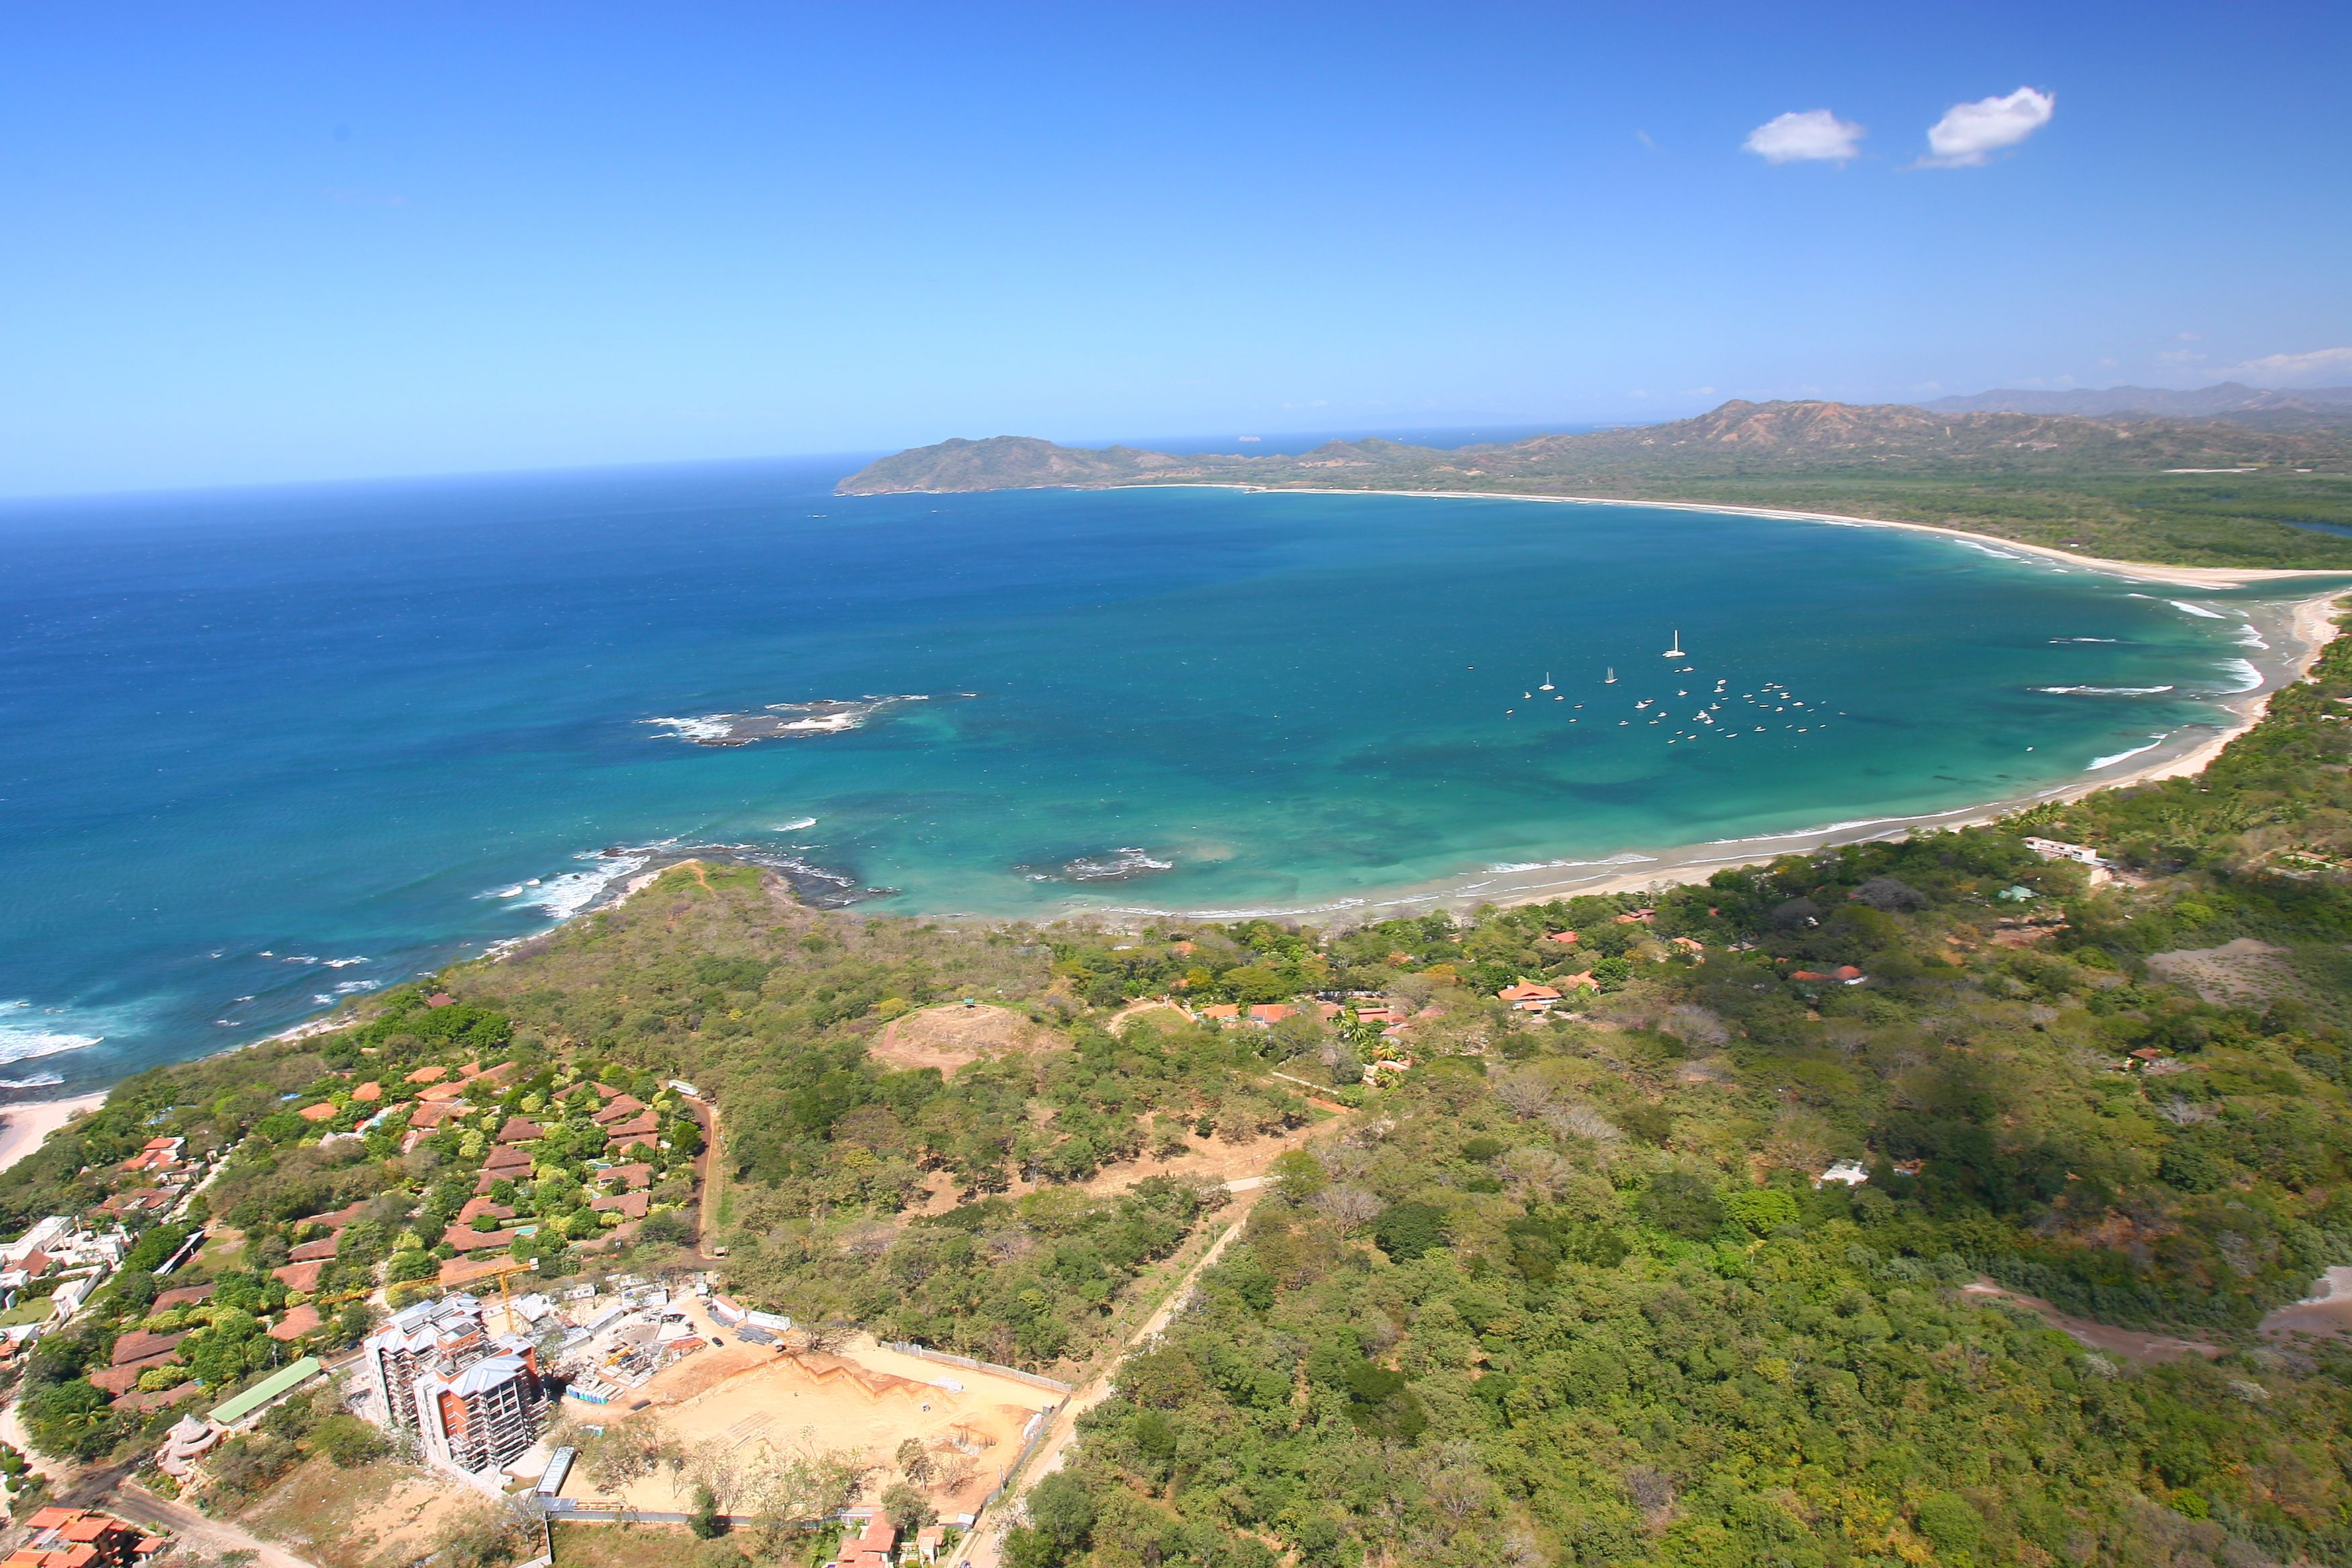 rosa helicopter with File Costa Rica Playa Langosta Isla Capitan Playa Tamarindo Playa Grande 2007 Aerial Photograph Tamarindowiki 03 on 87257 as well 87257 likewise Pretty Pink Lakes Across The Globe 54 Pics together with Skate Amor as well Badges.